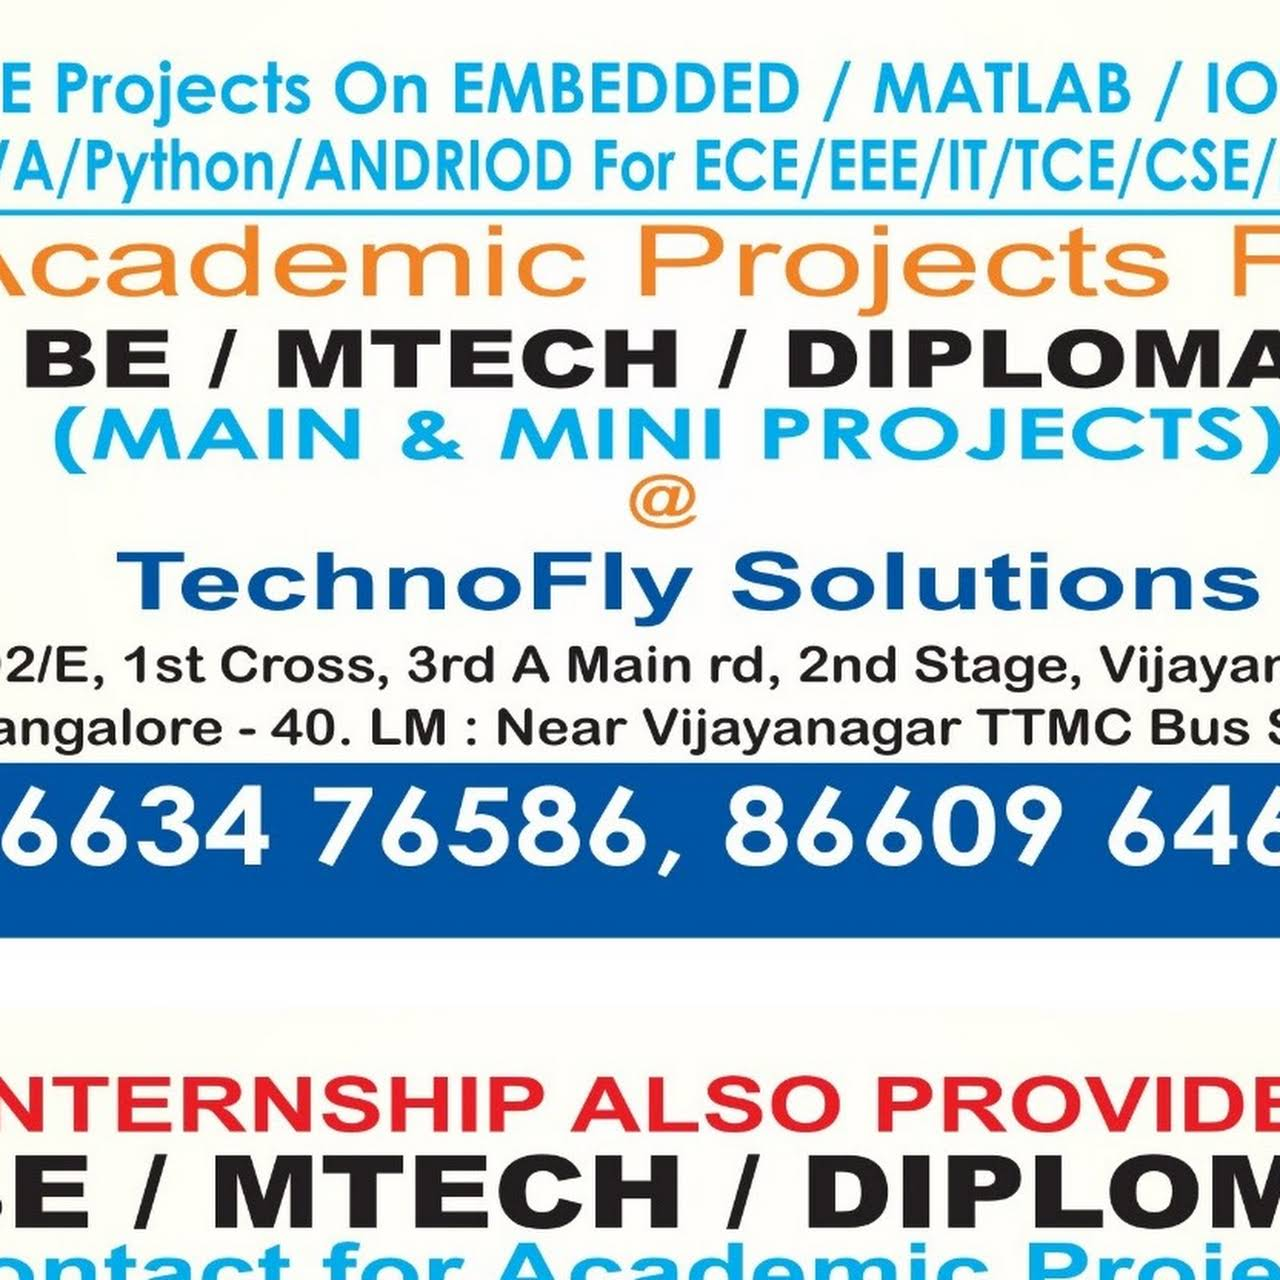 Technofly Solutions - Institute Of Technology in Bengaluru